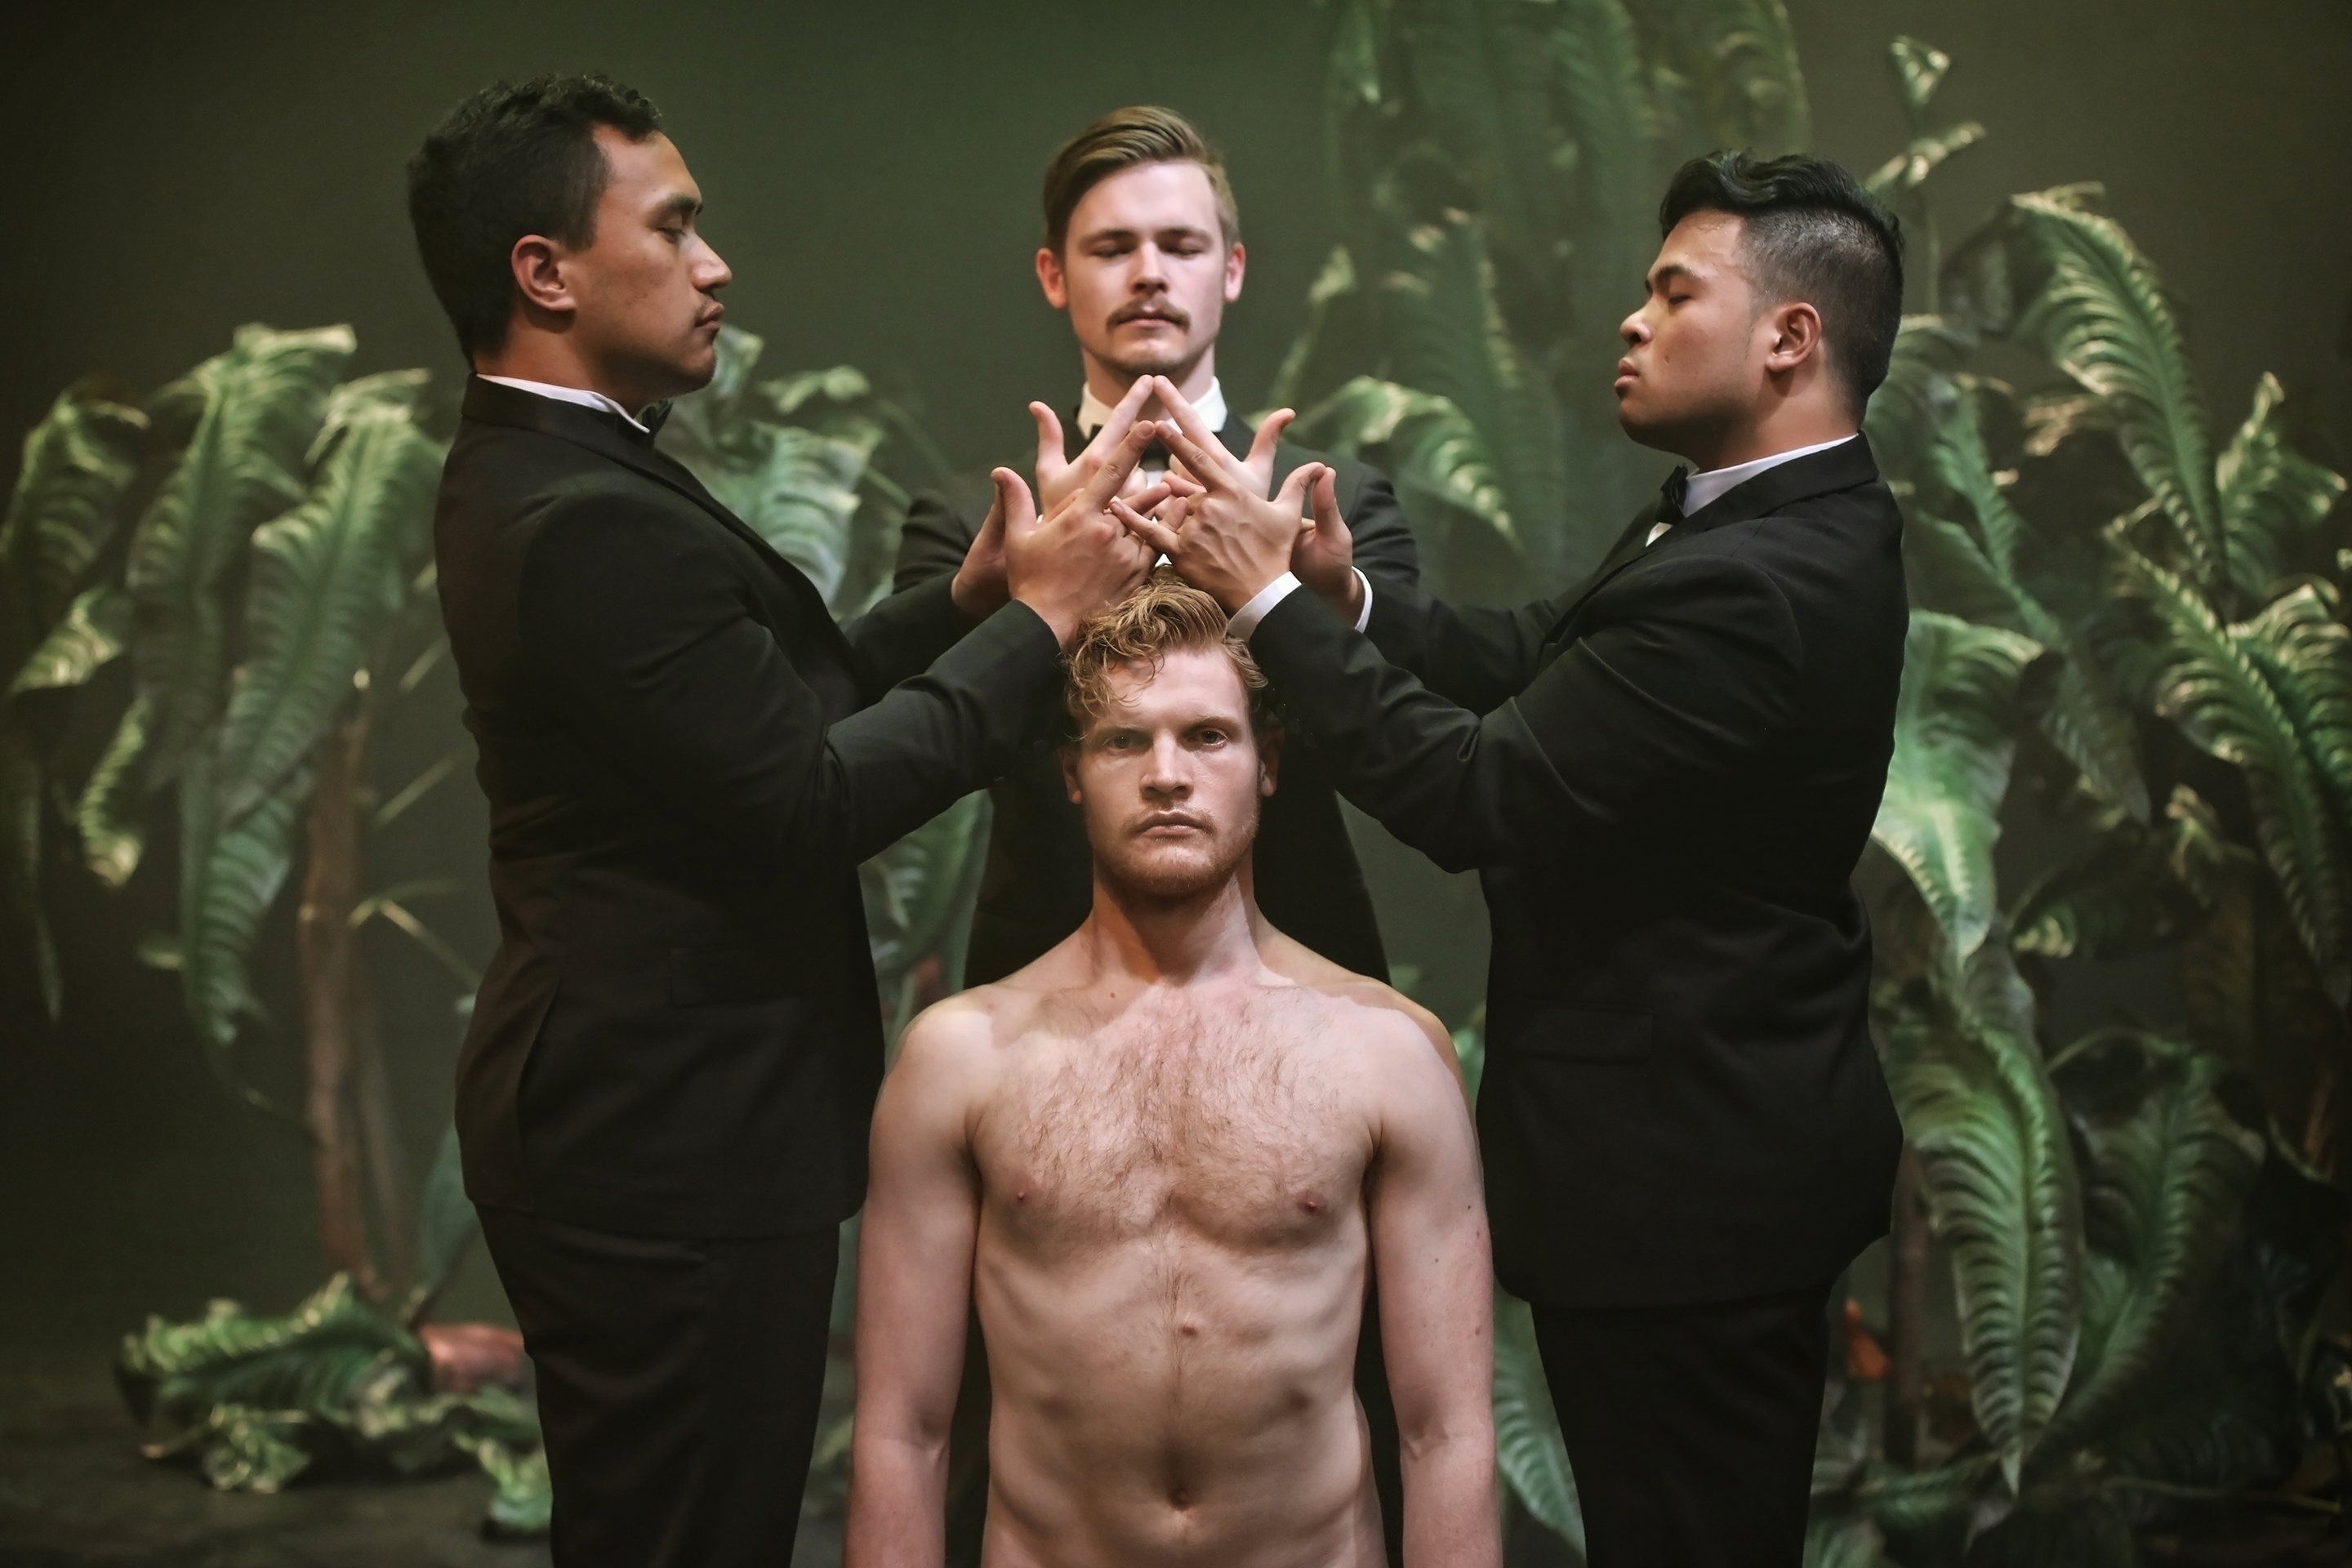 Shaun Parker Joins The DTF Club This Week To Promote KING Premiering On Feb 20th As Part Of Sydney Mardi Gras Festival